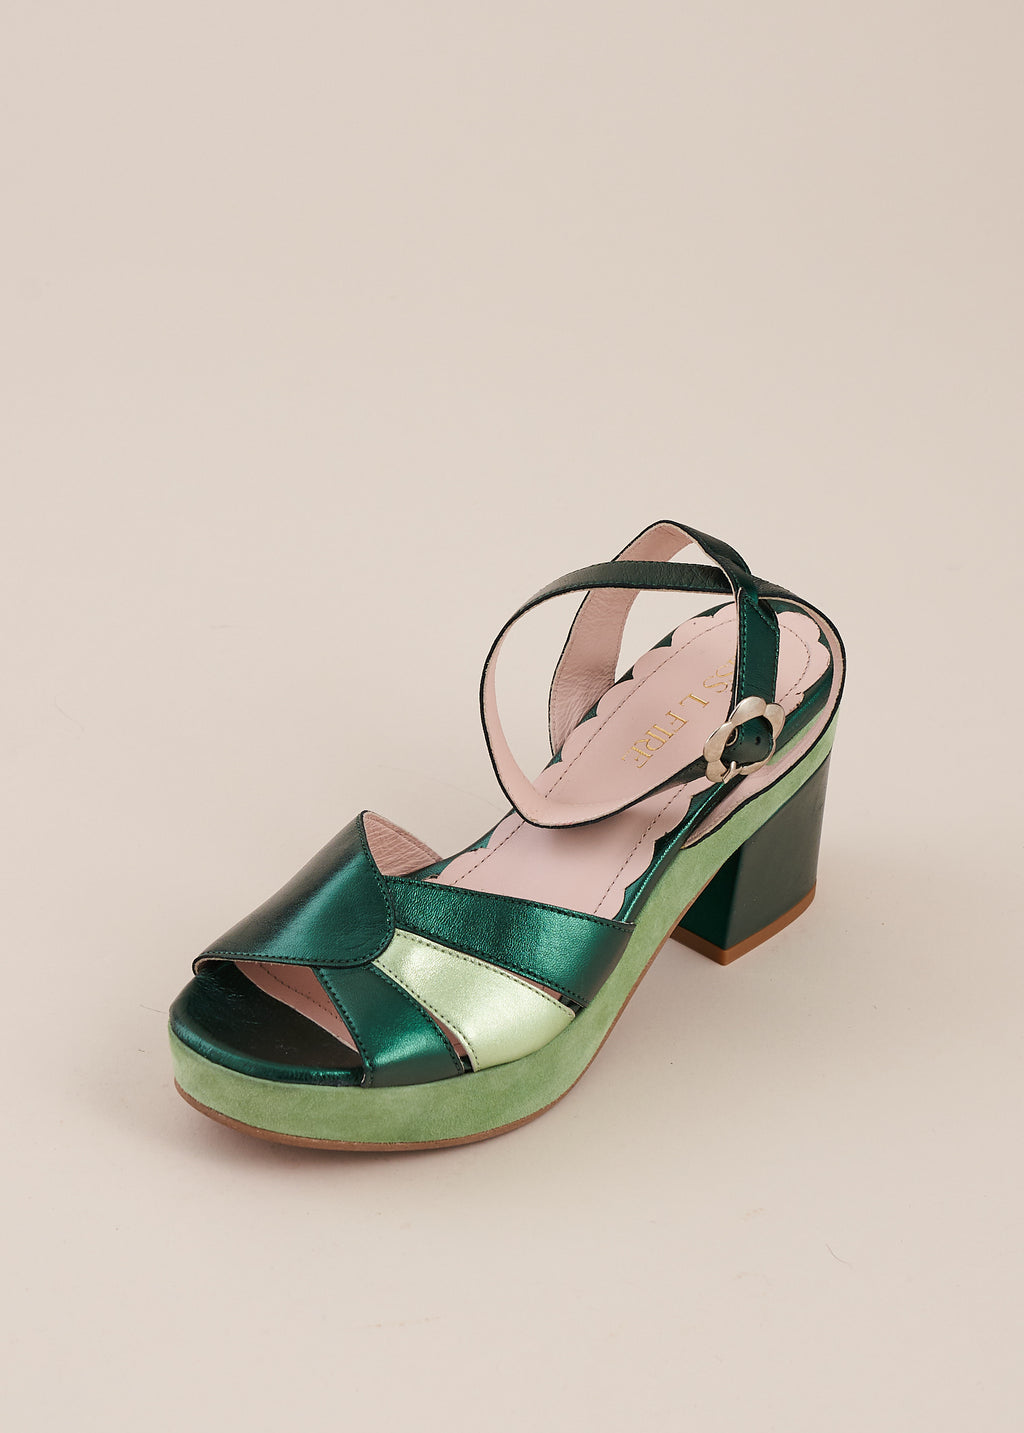 Cora in mint green suede and emerald green metallic leather by Miss L Fire is a half wedge sandal with vintage art deco inspired sunburst detail. Small batch, ethically hand made in Spain.